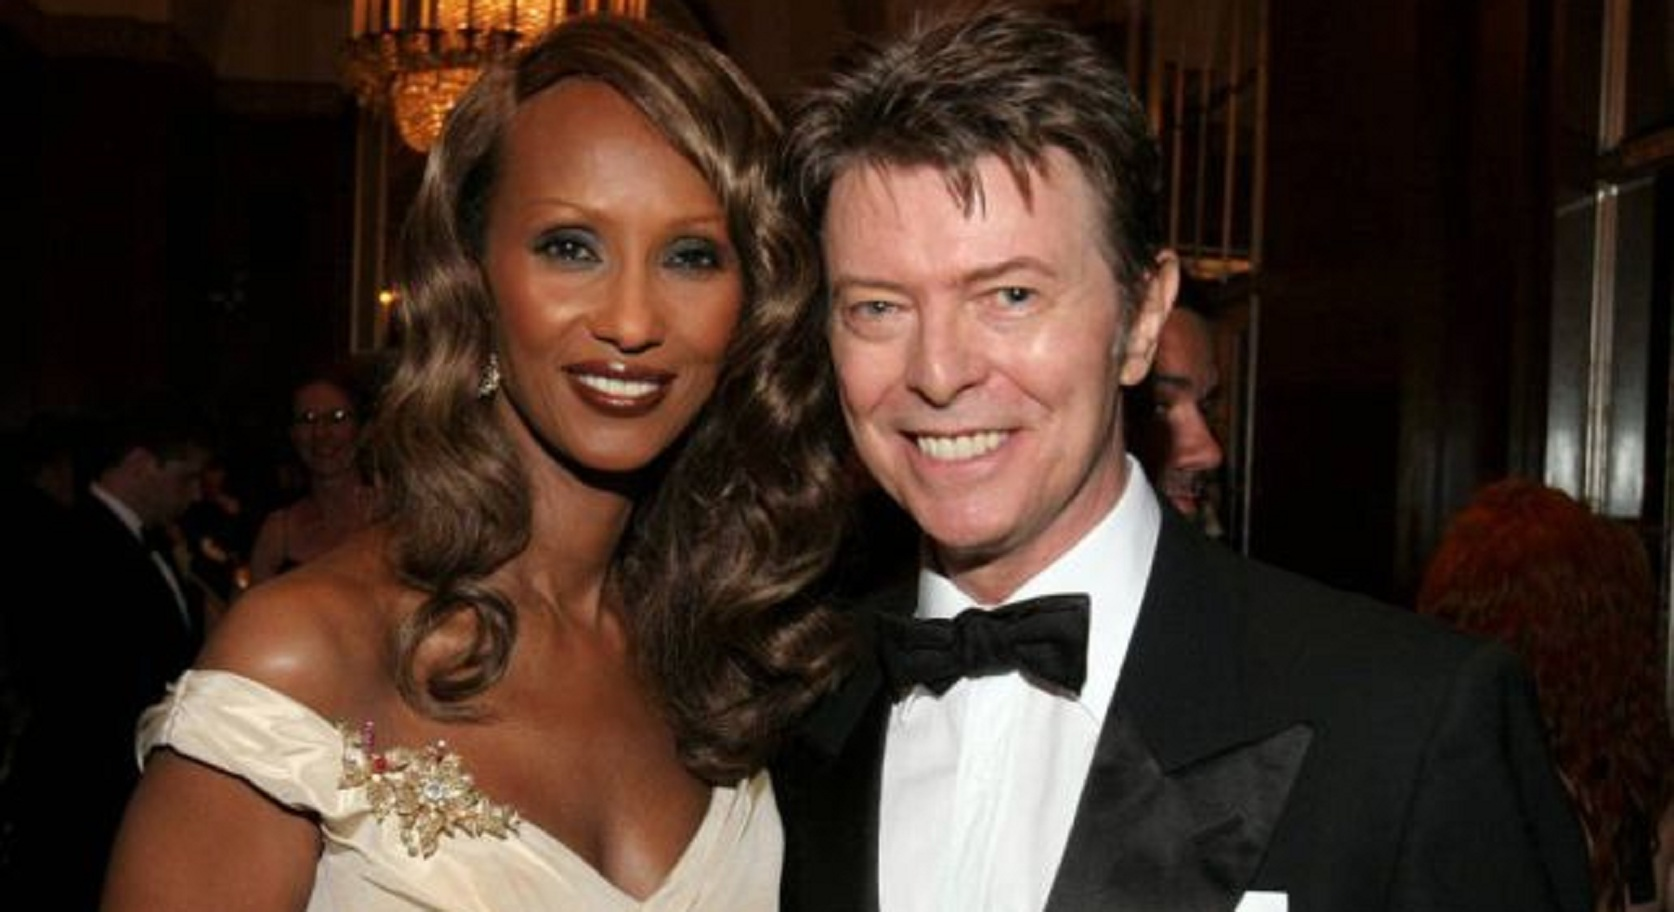 Iman Says She Will Never Remarry, Even Though She's 'Lonely' After Husband David Bowie's Death